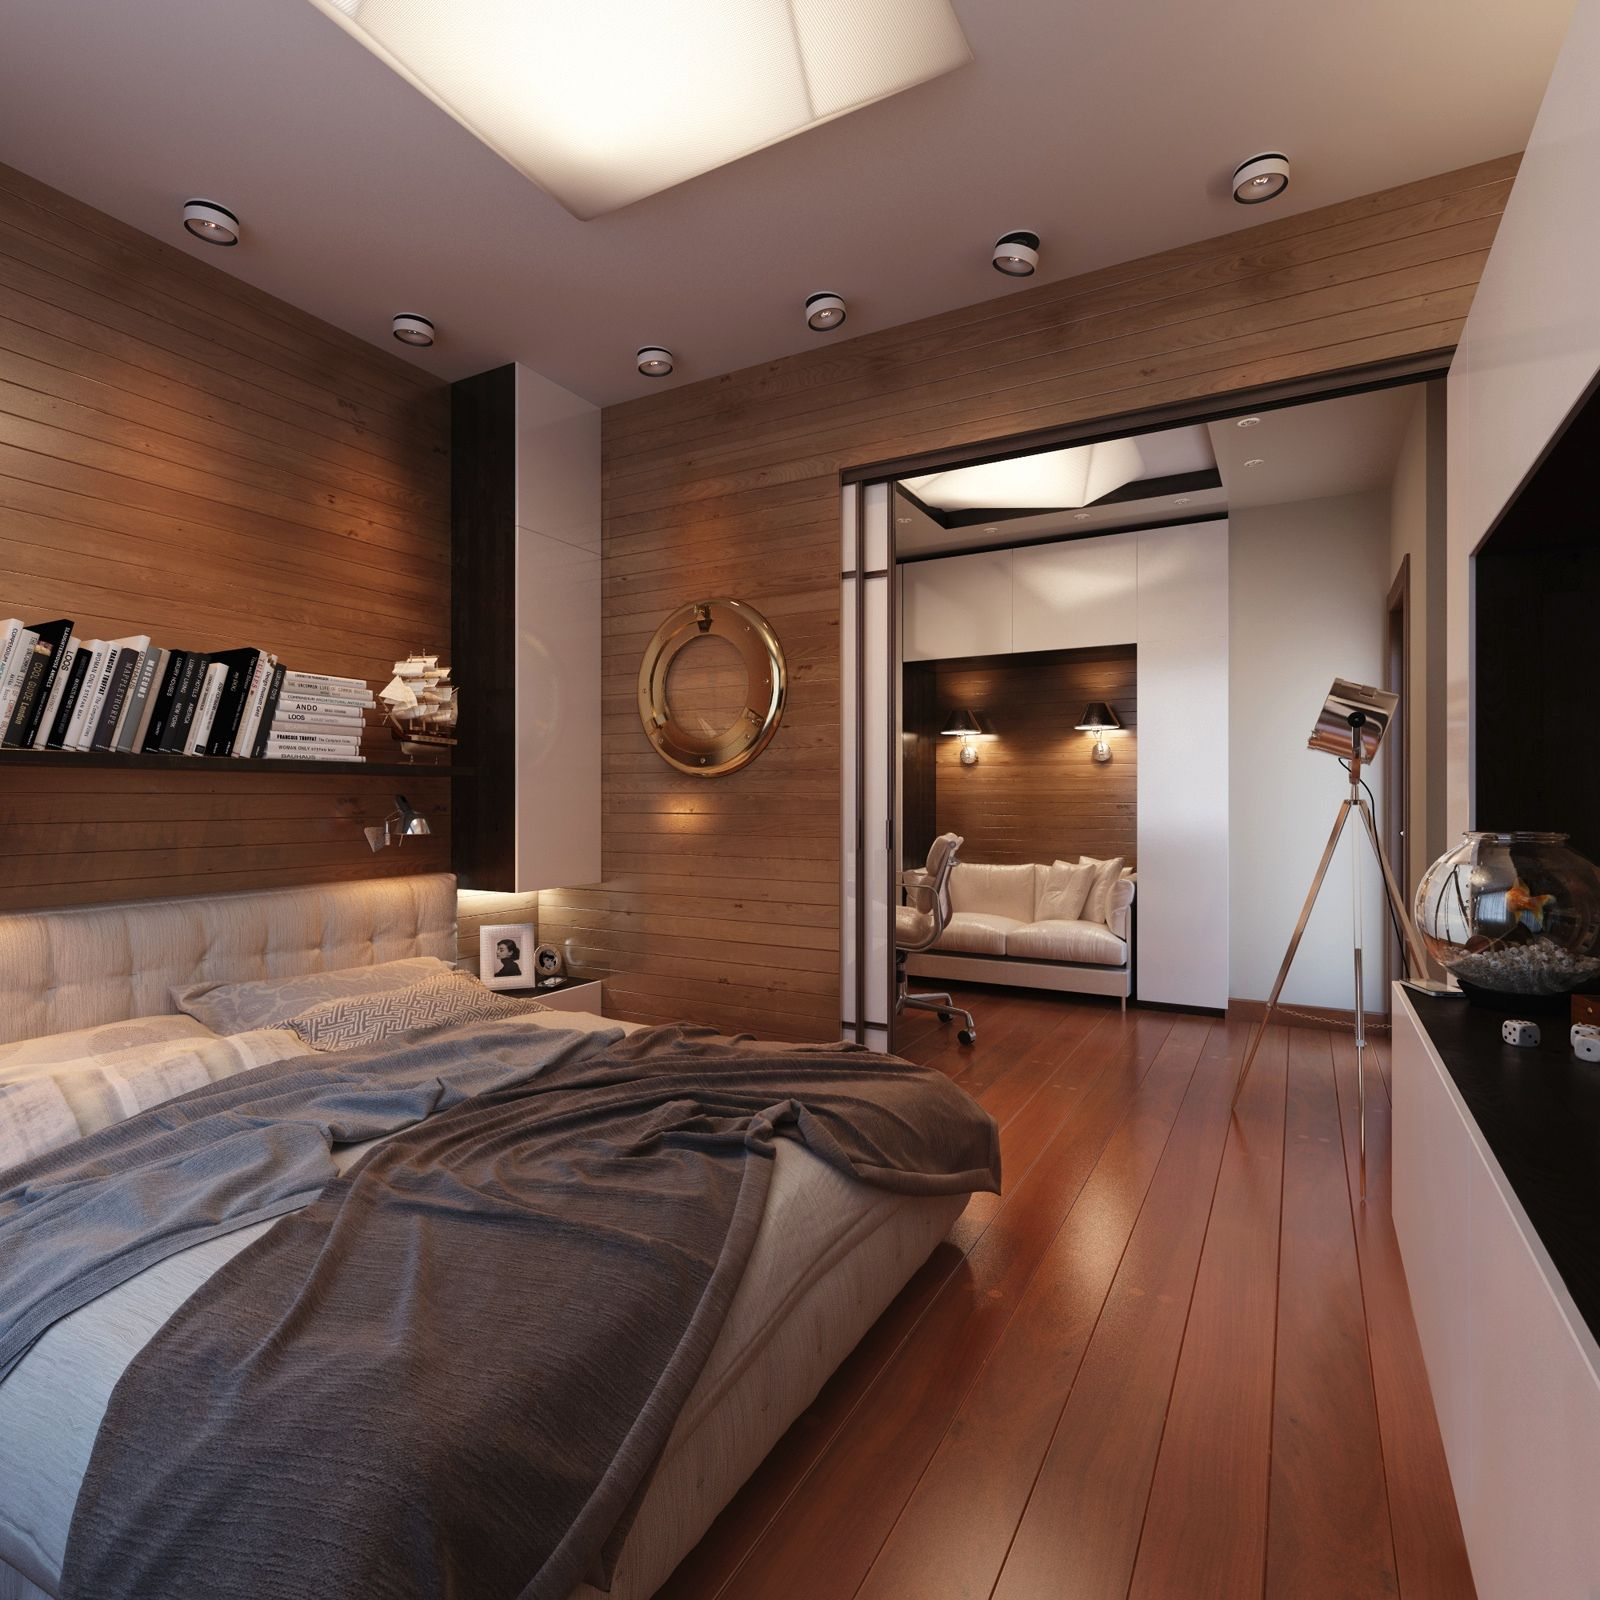 Yacht Style Bedroom With Wood Floors And Walls Rumah Mewah